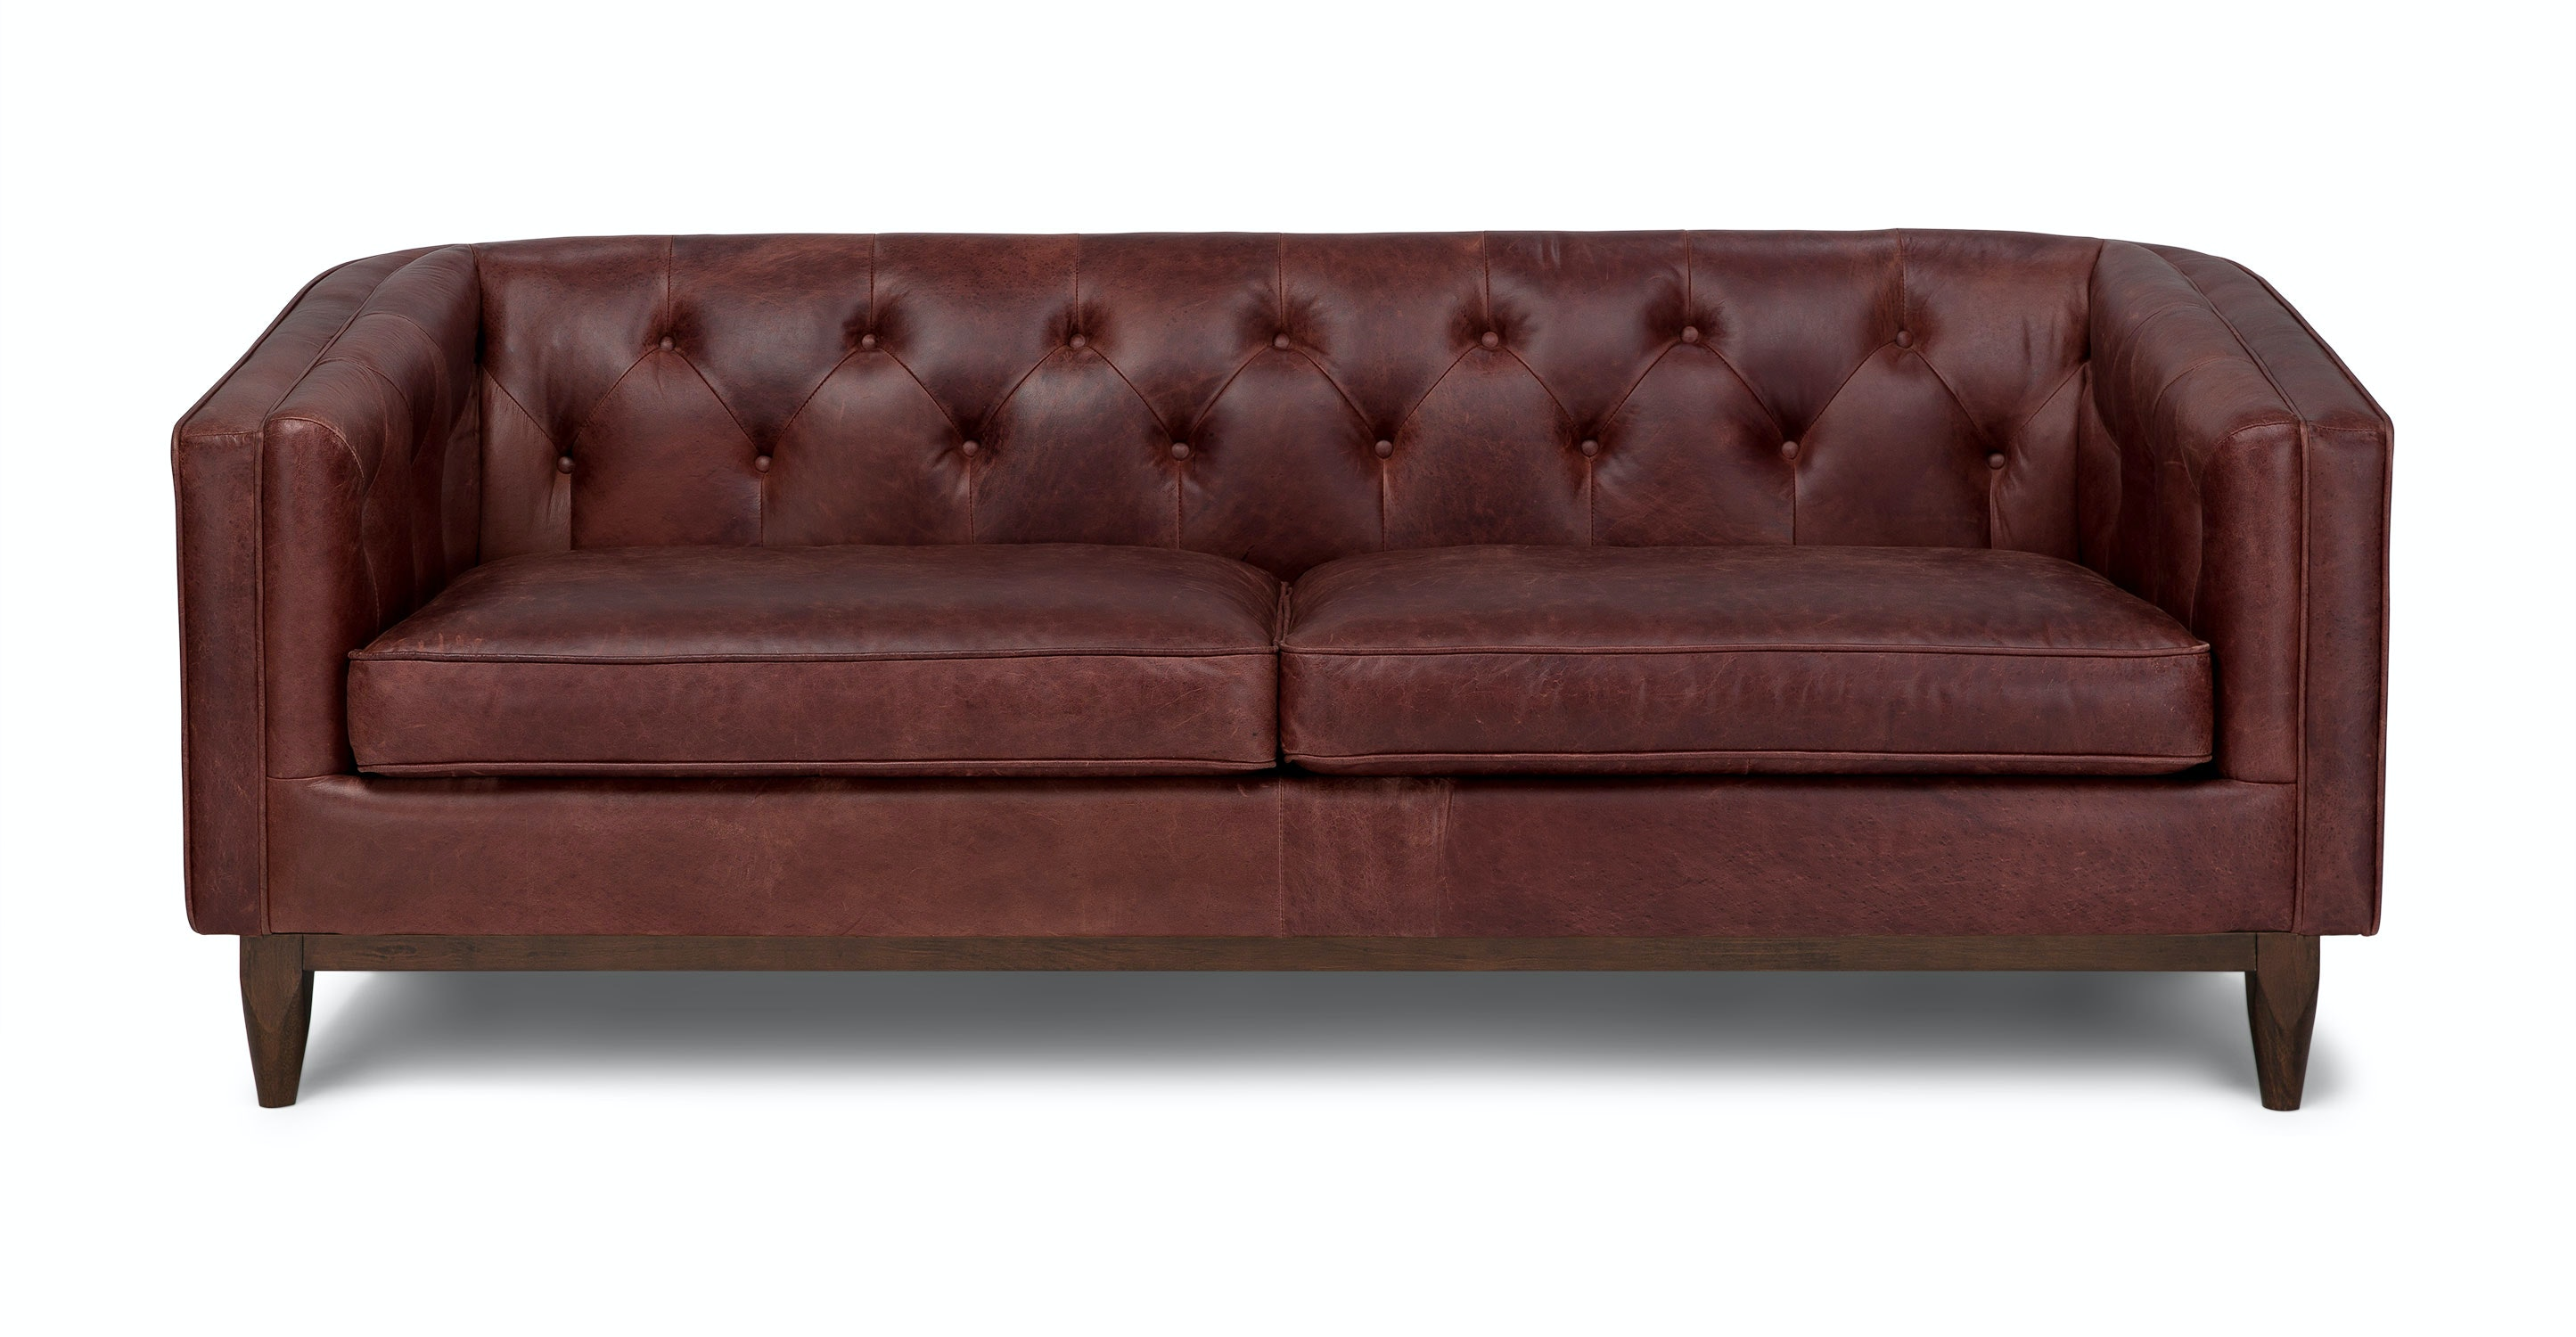 100 Leather Care Products For Sofas How To Clean A  : image23048 from 45.77.108.62 size 2890 x 1500 jpeg 427kB